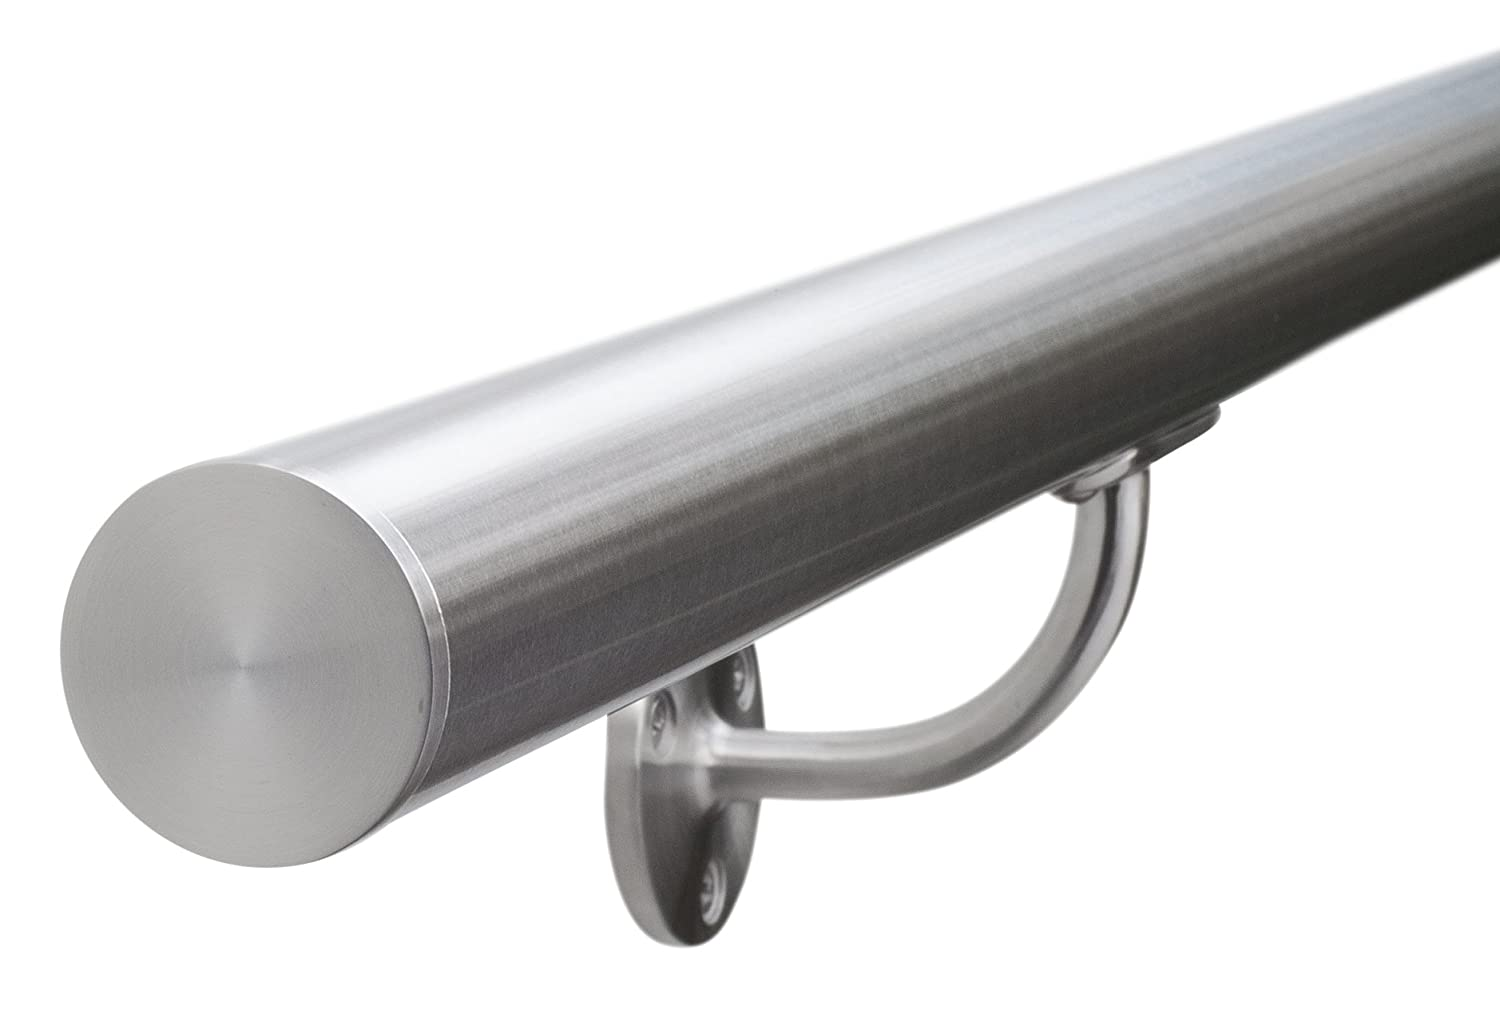 Satin-Polish Brushed Stainless Steel Stair Handrail - Pre-Assembled, Select Your Length - with Classic Flat End Caps Seagull Balustrades